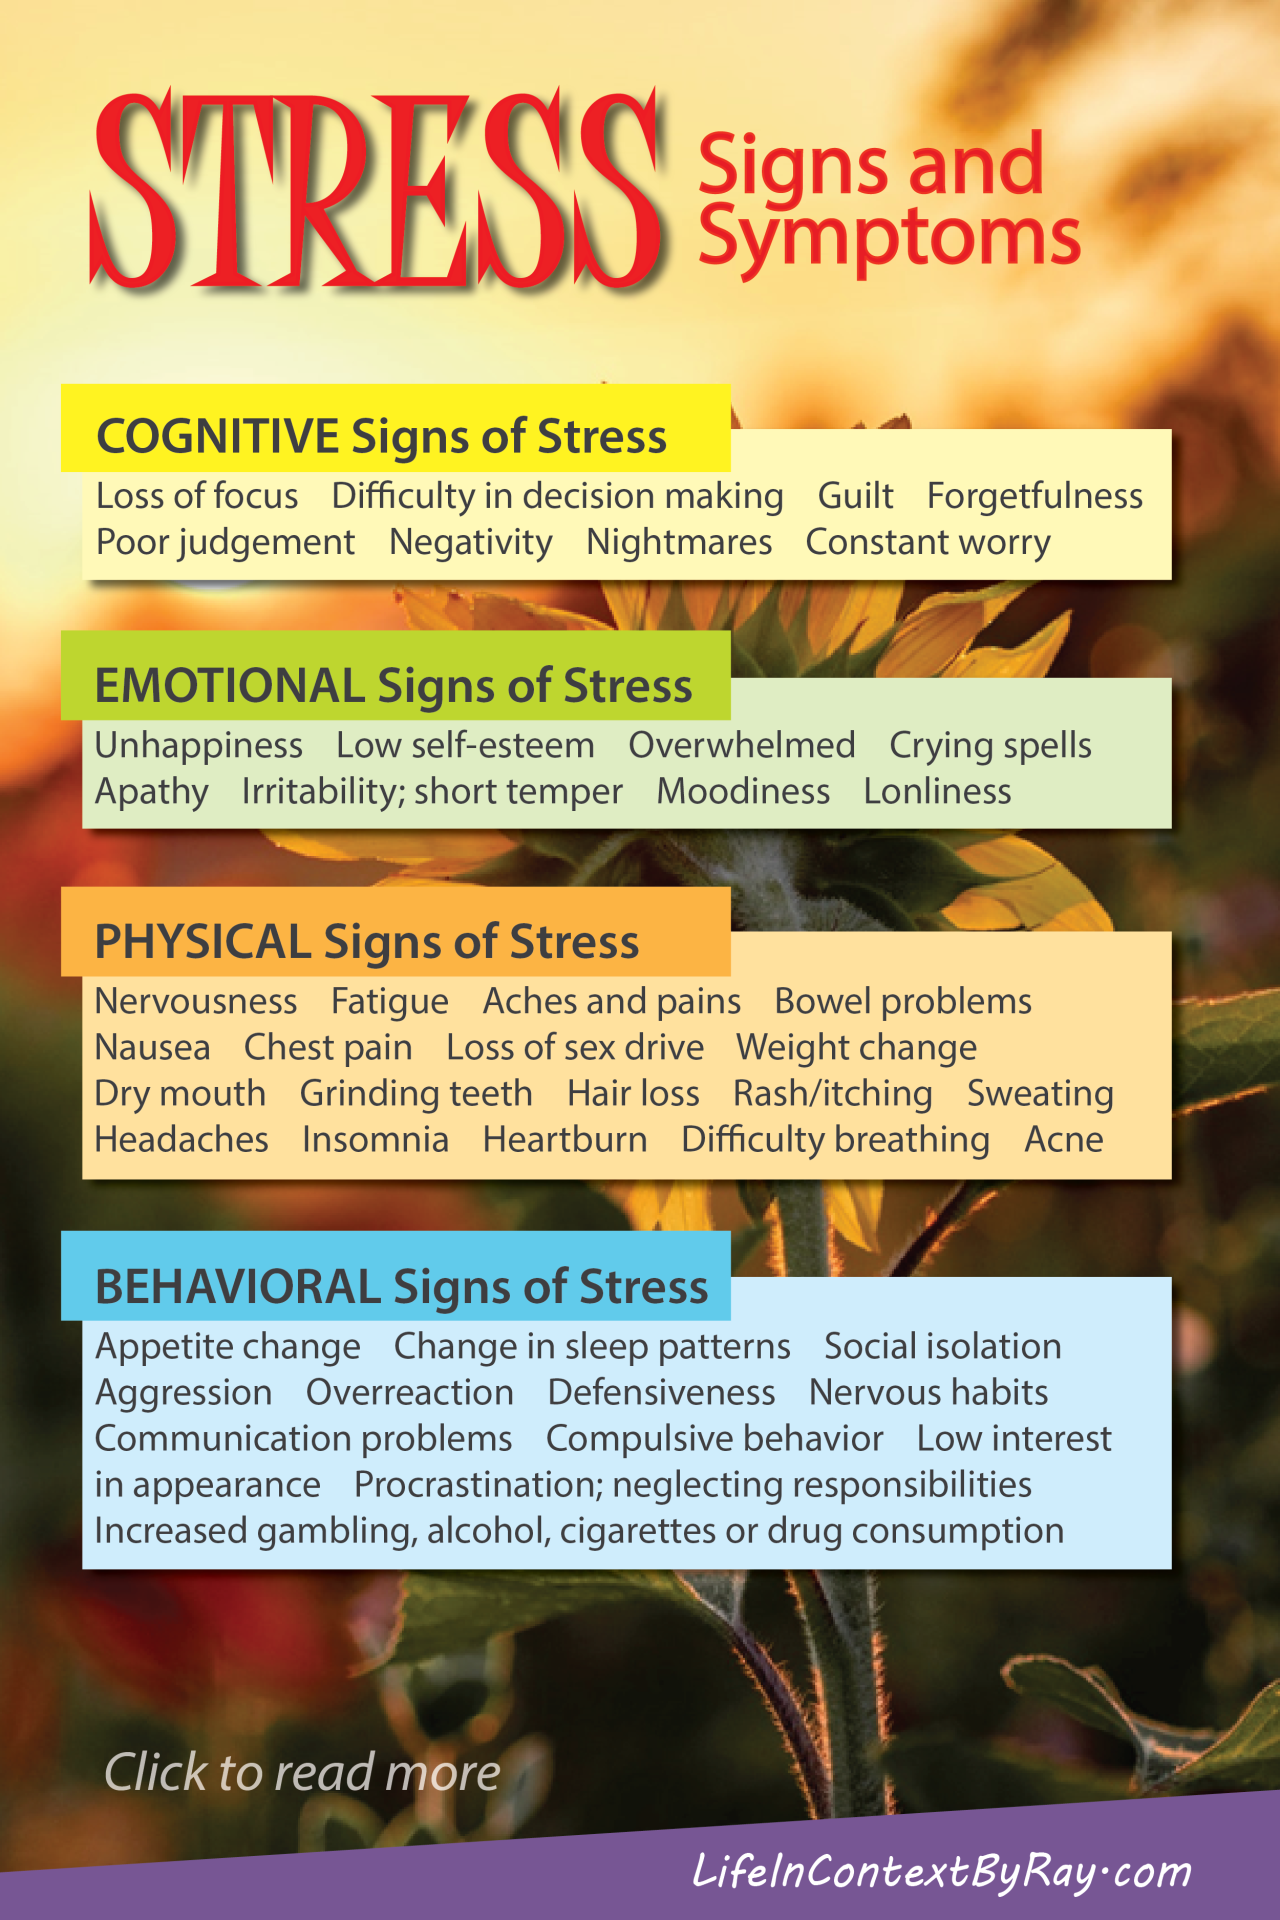 You may think you can recognize stress symptoms, but many of us